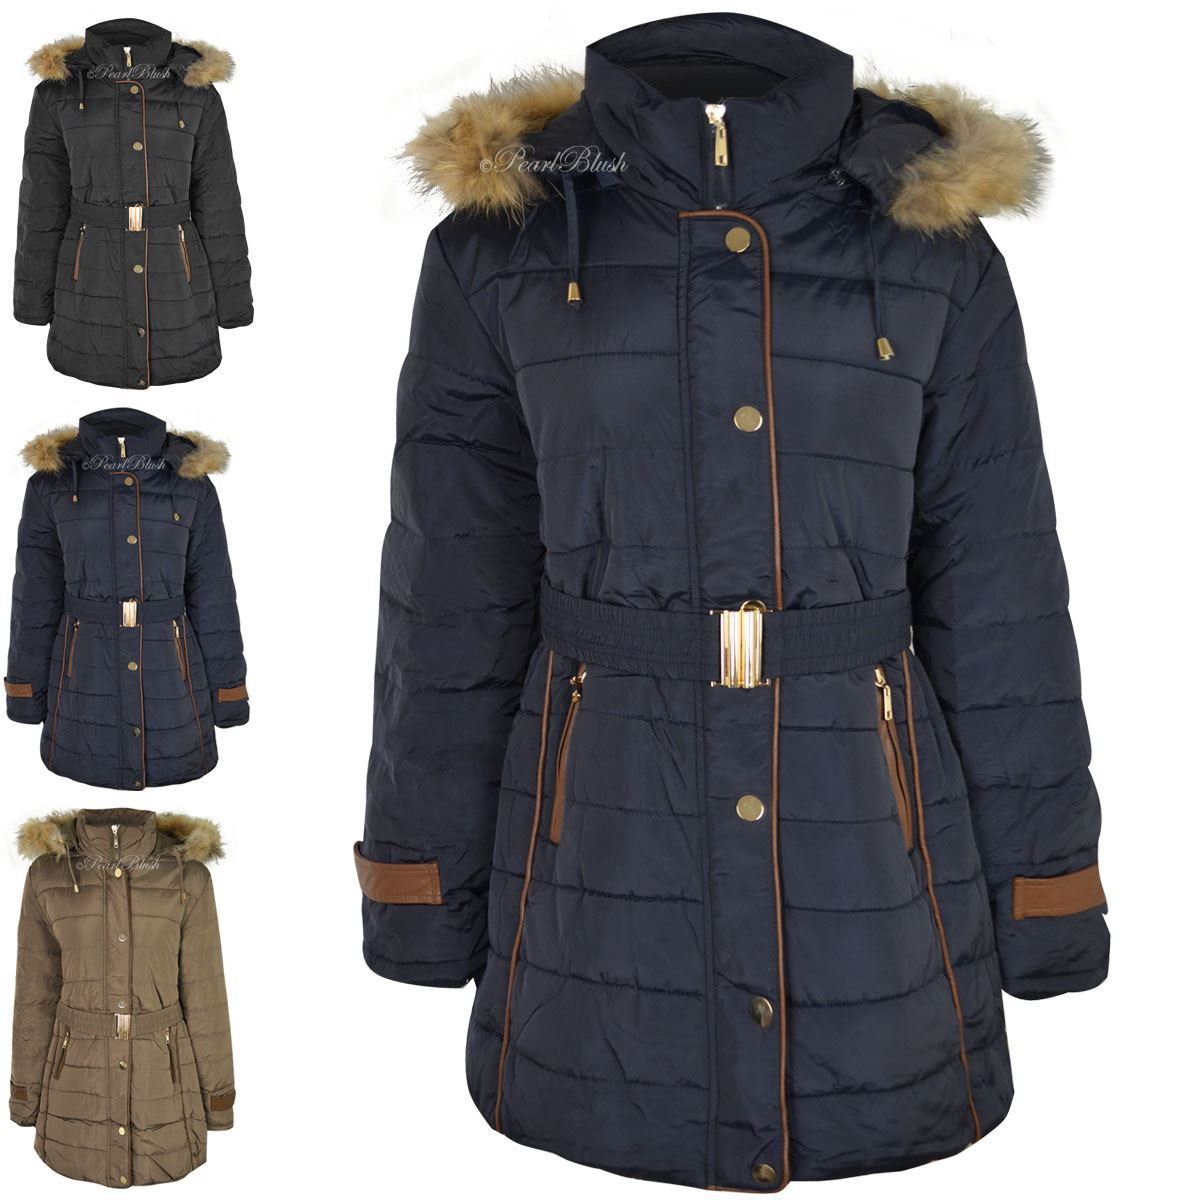 Buy the latest plus size coats for women at cheap prices, and check out our daily updated new arrival trendy plus size winter coats at 0549sahibi.tk